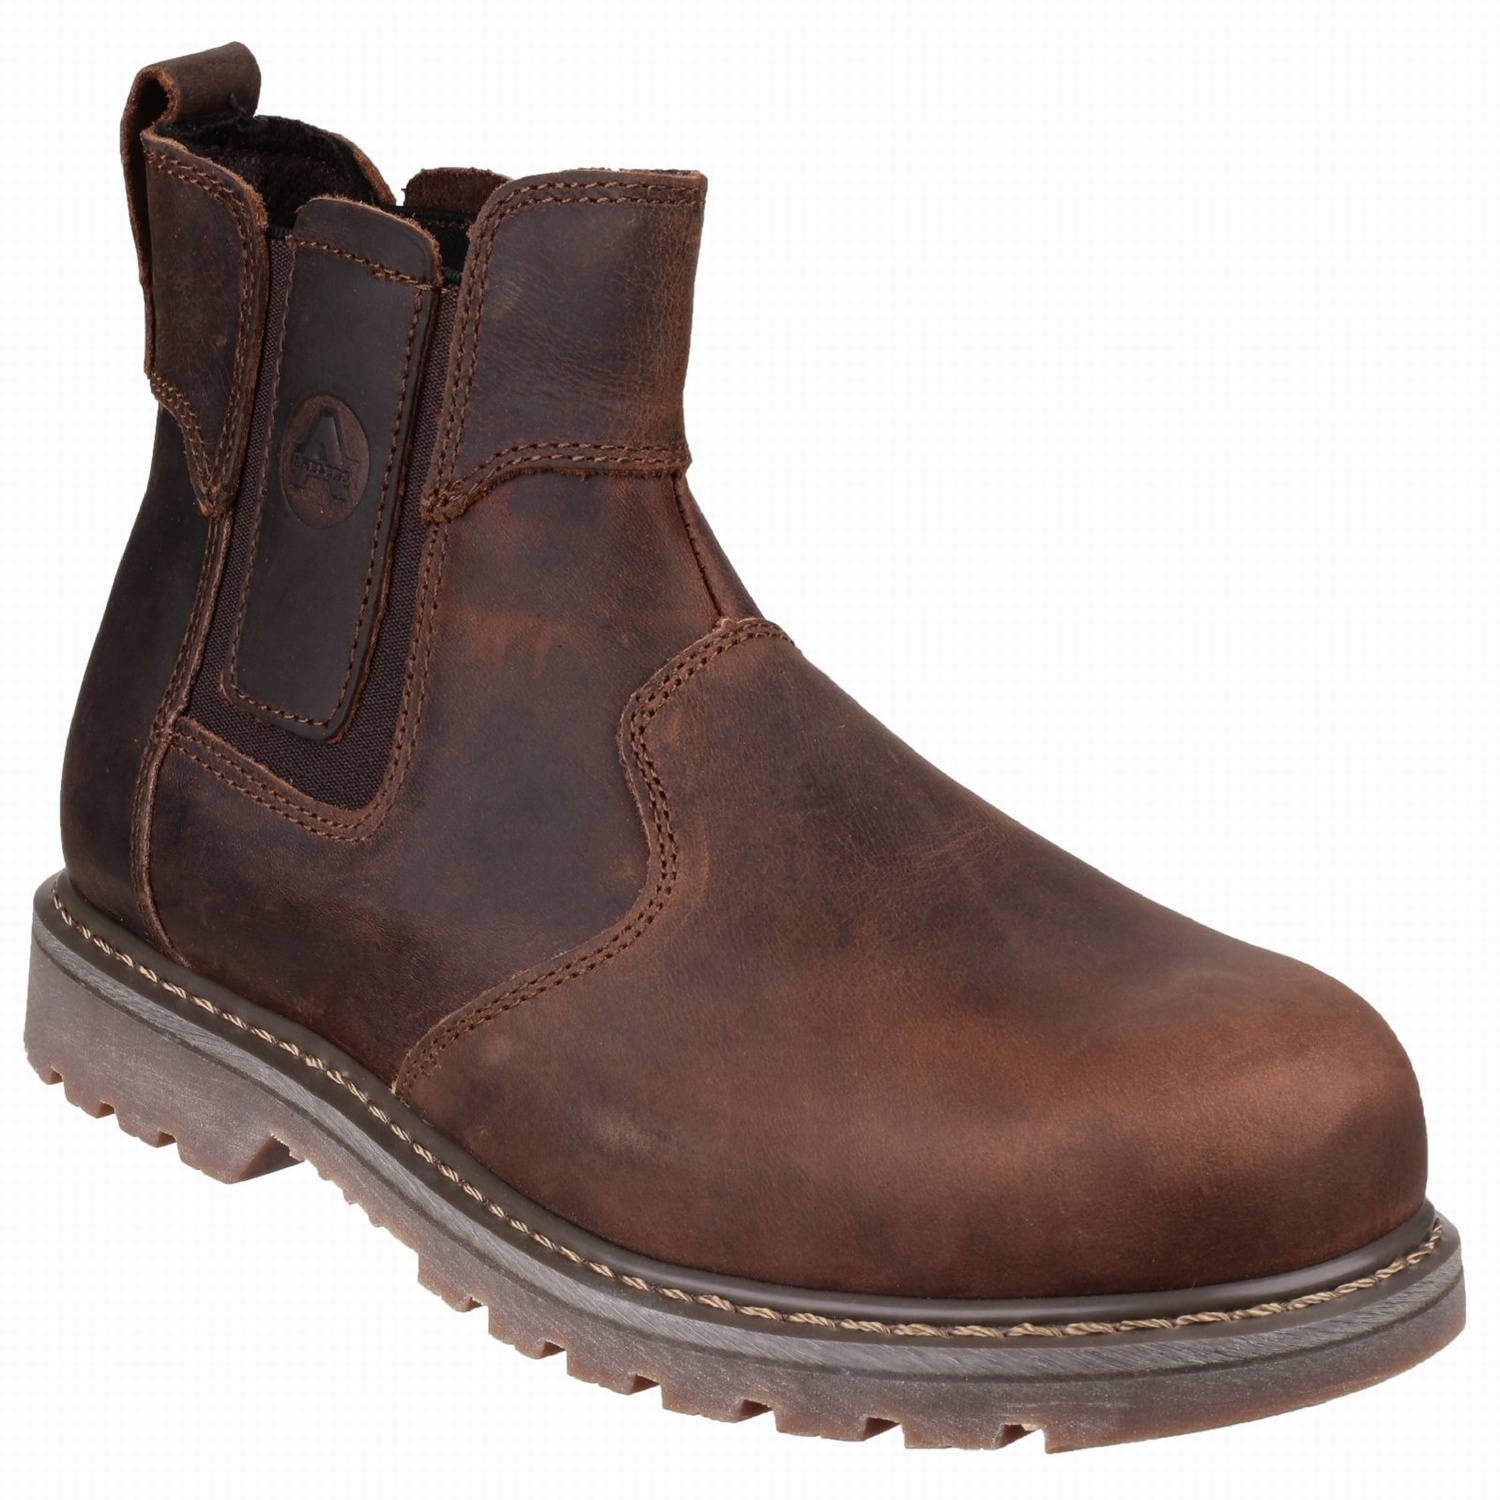 Amblers FS165 Brown Dealer Welted Safety Boots